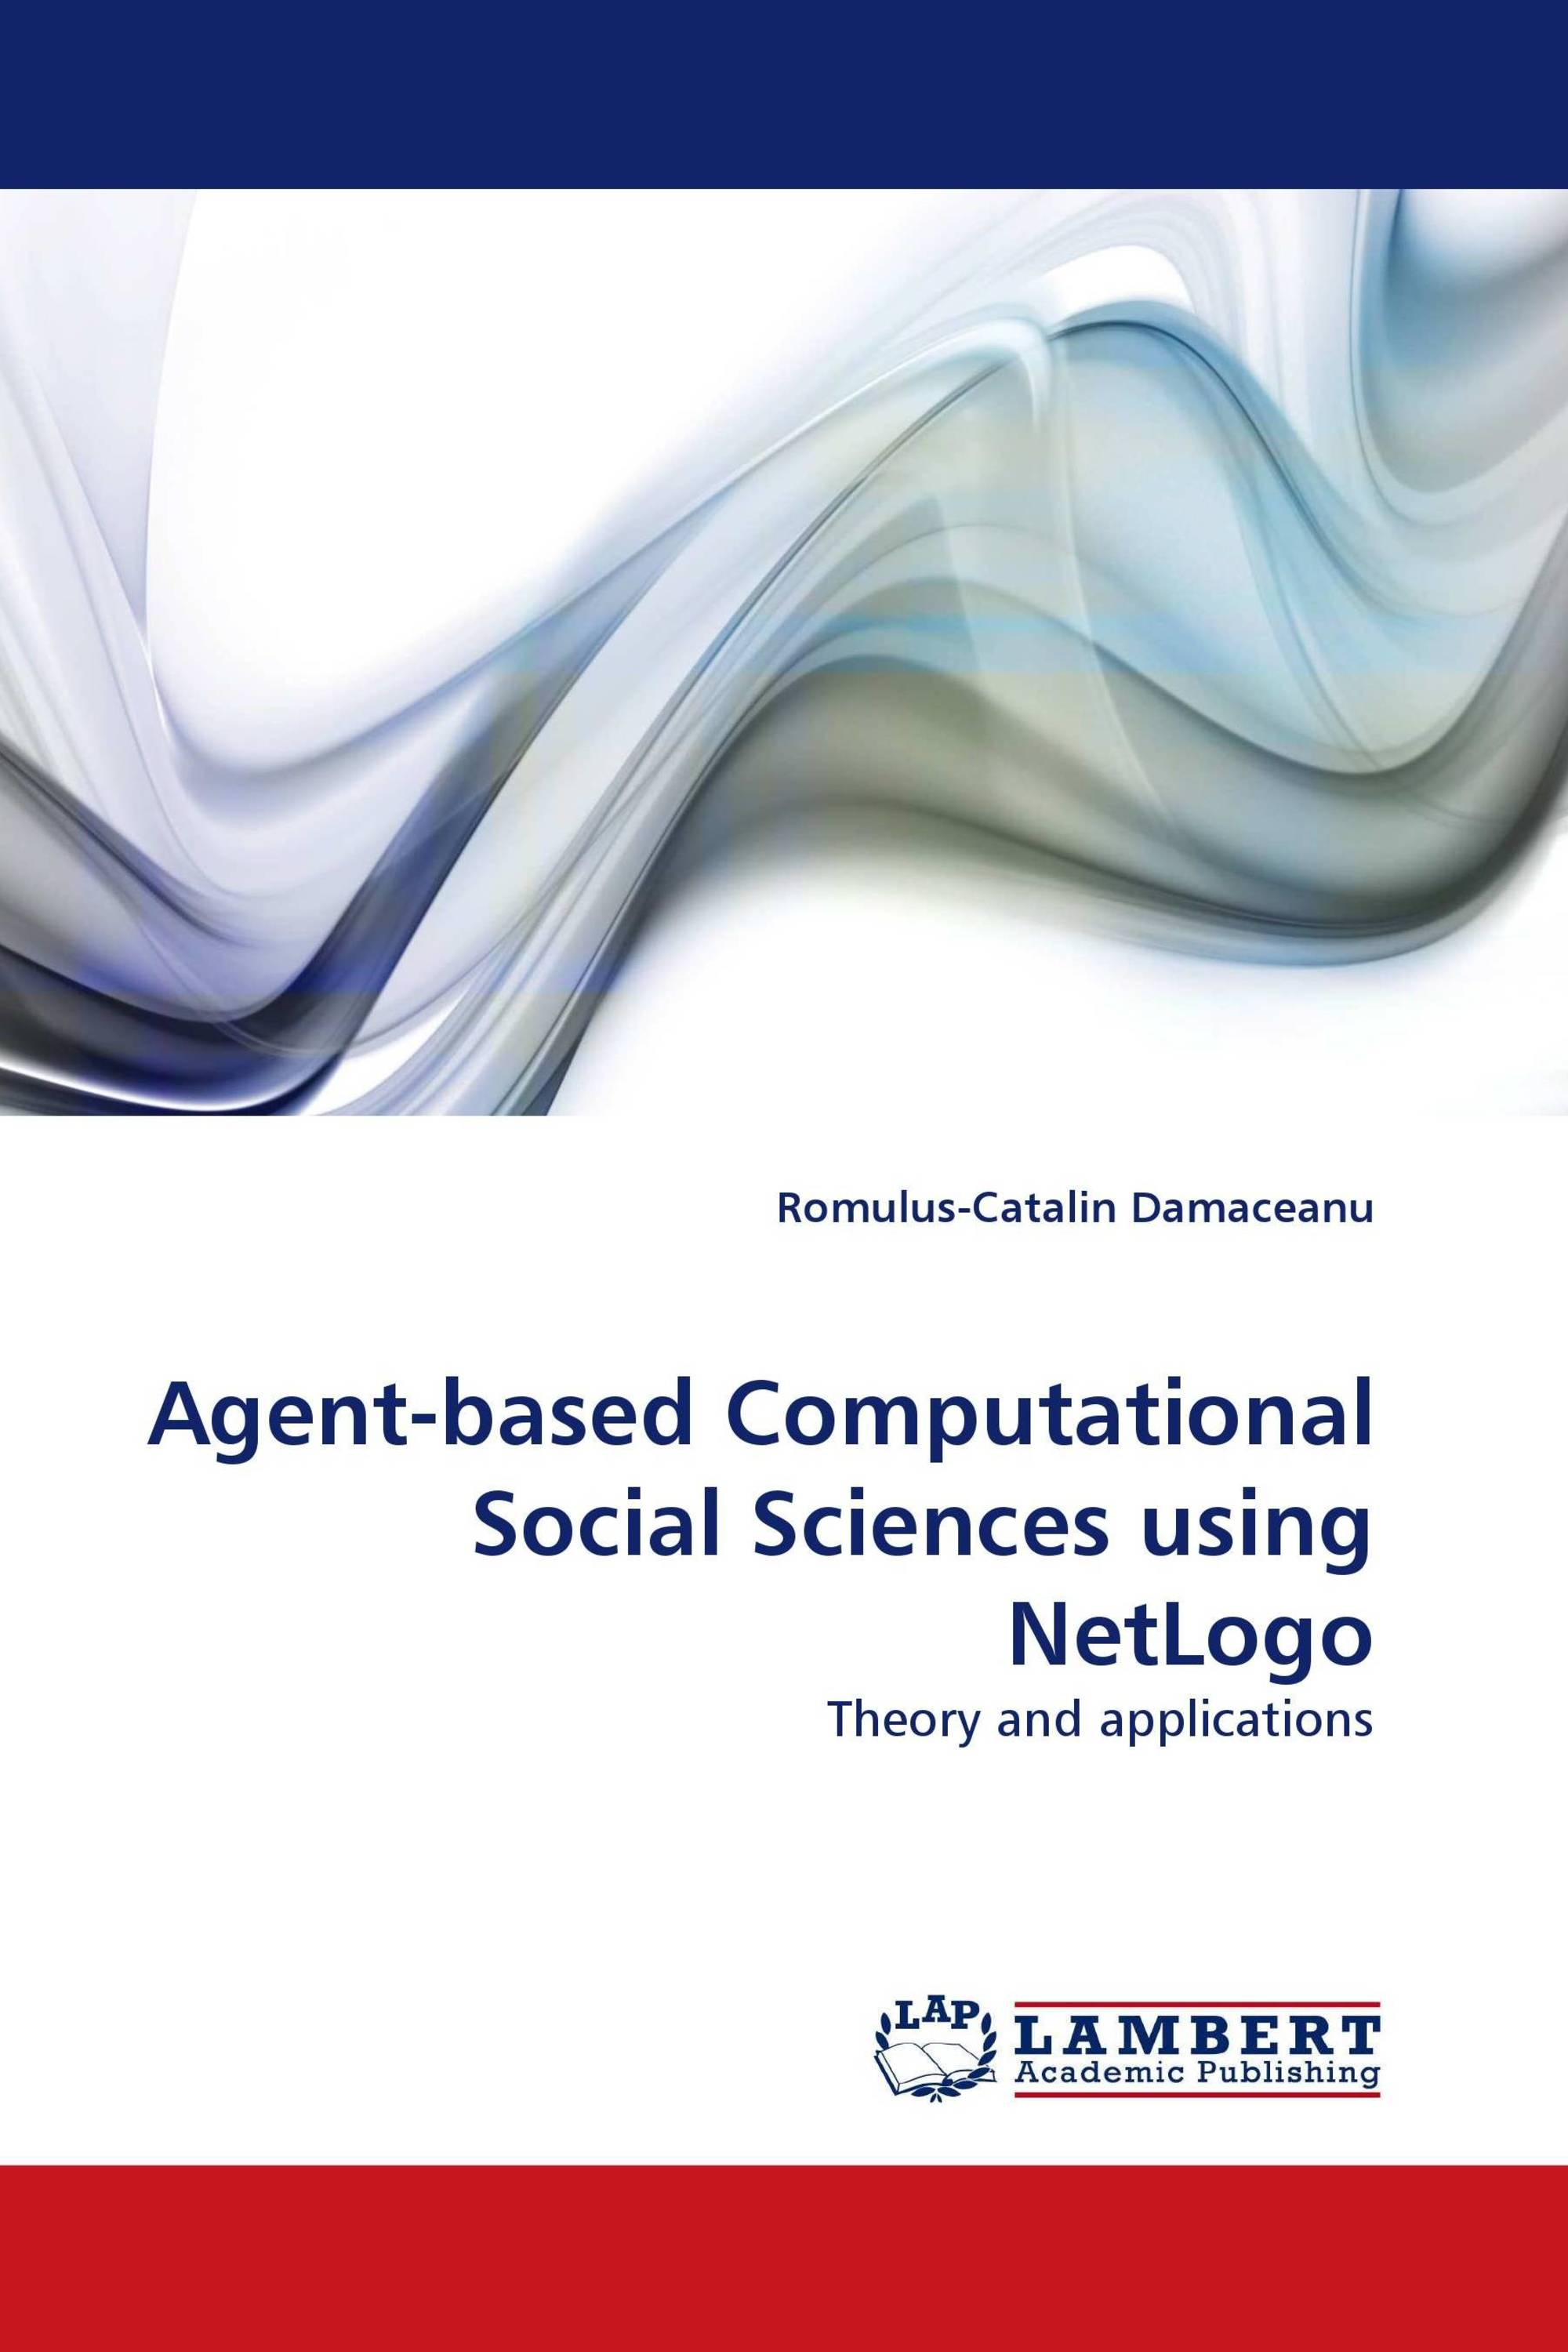 Agent-based Computational Social Sciences using NetLogo